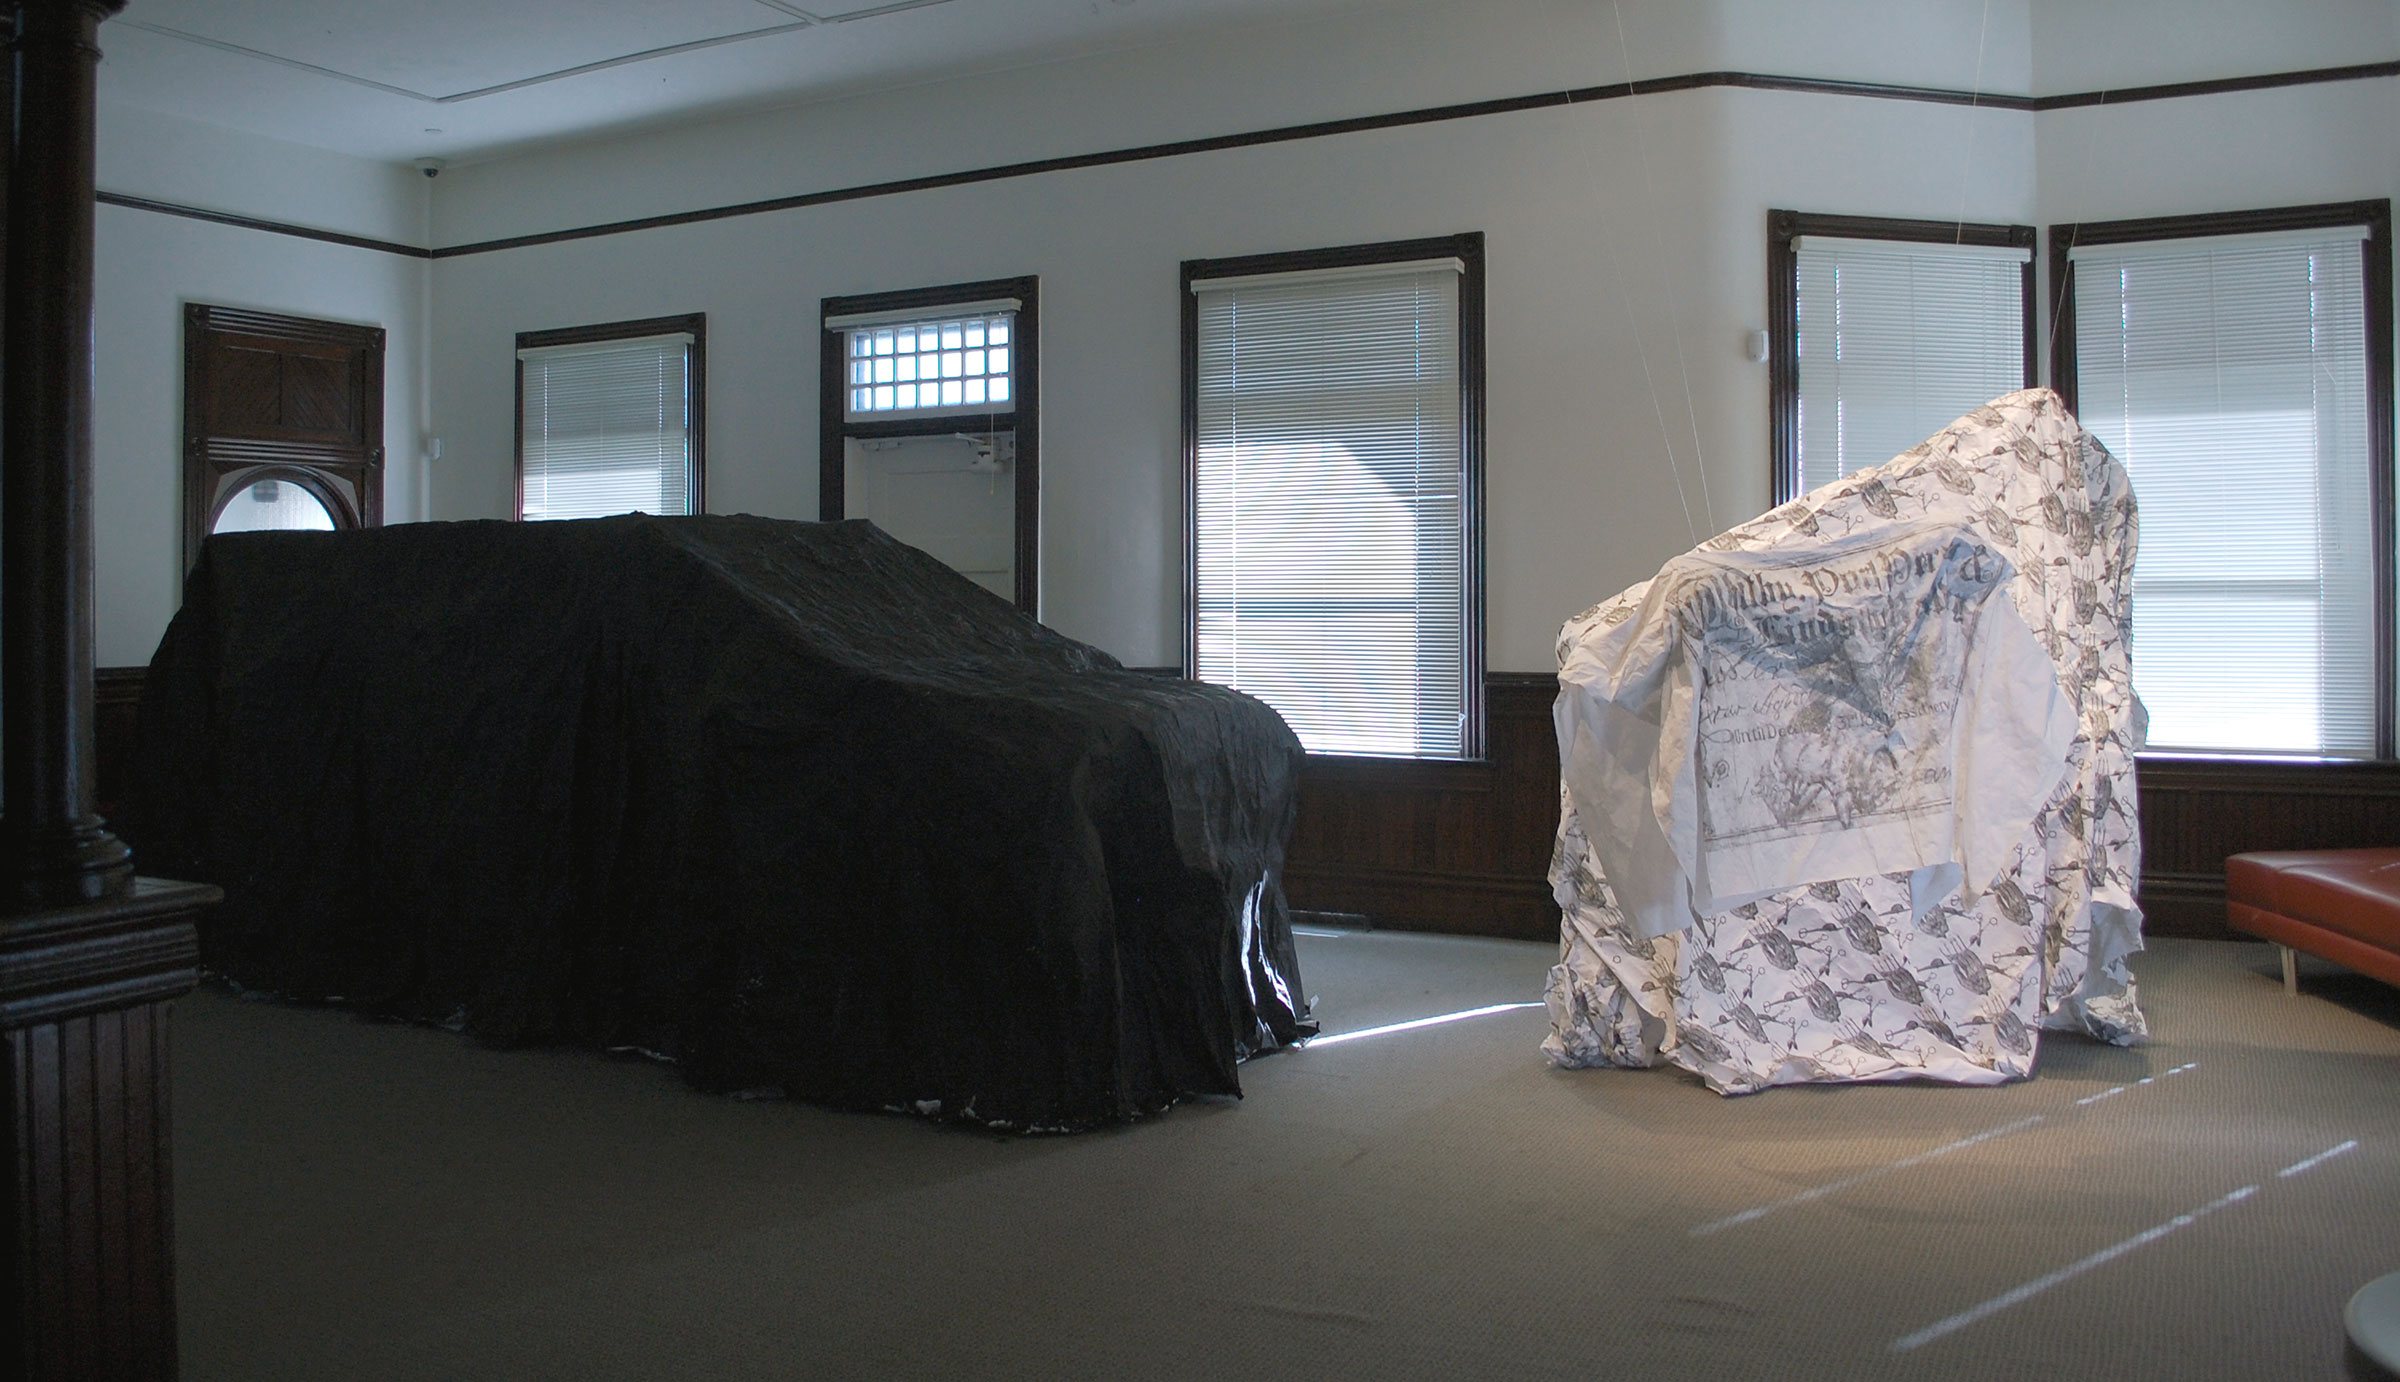 a dog is short a car is long  | paper, sewn digital prints, gesso | horse, dog, car ghosts 1:1 scale